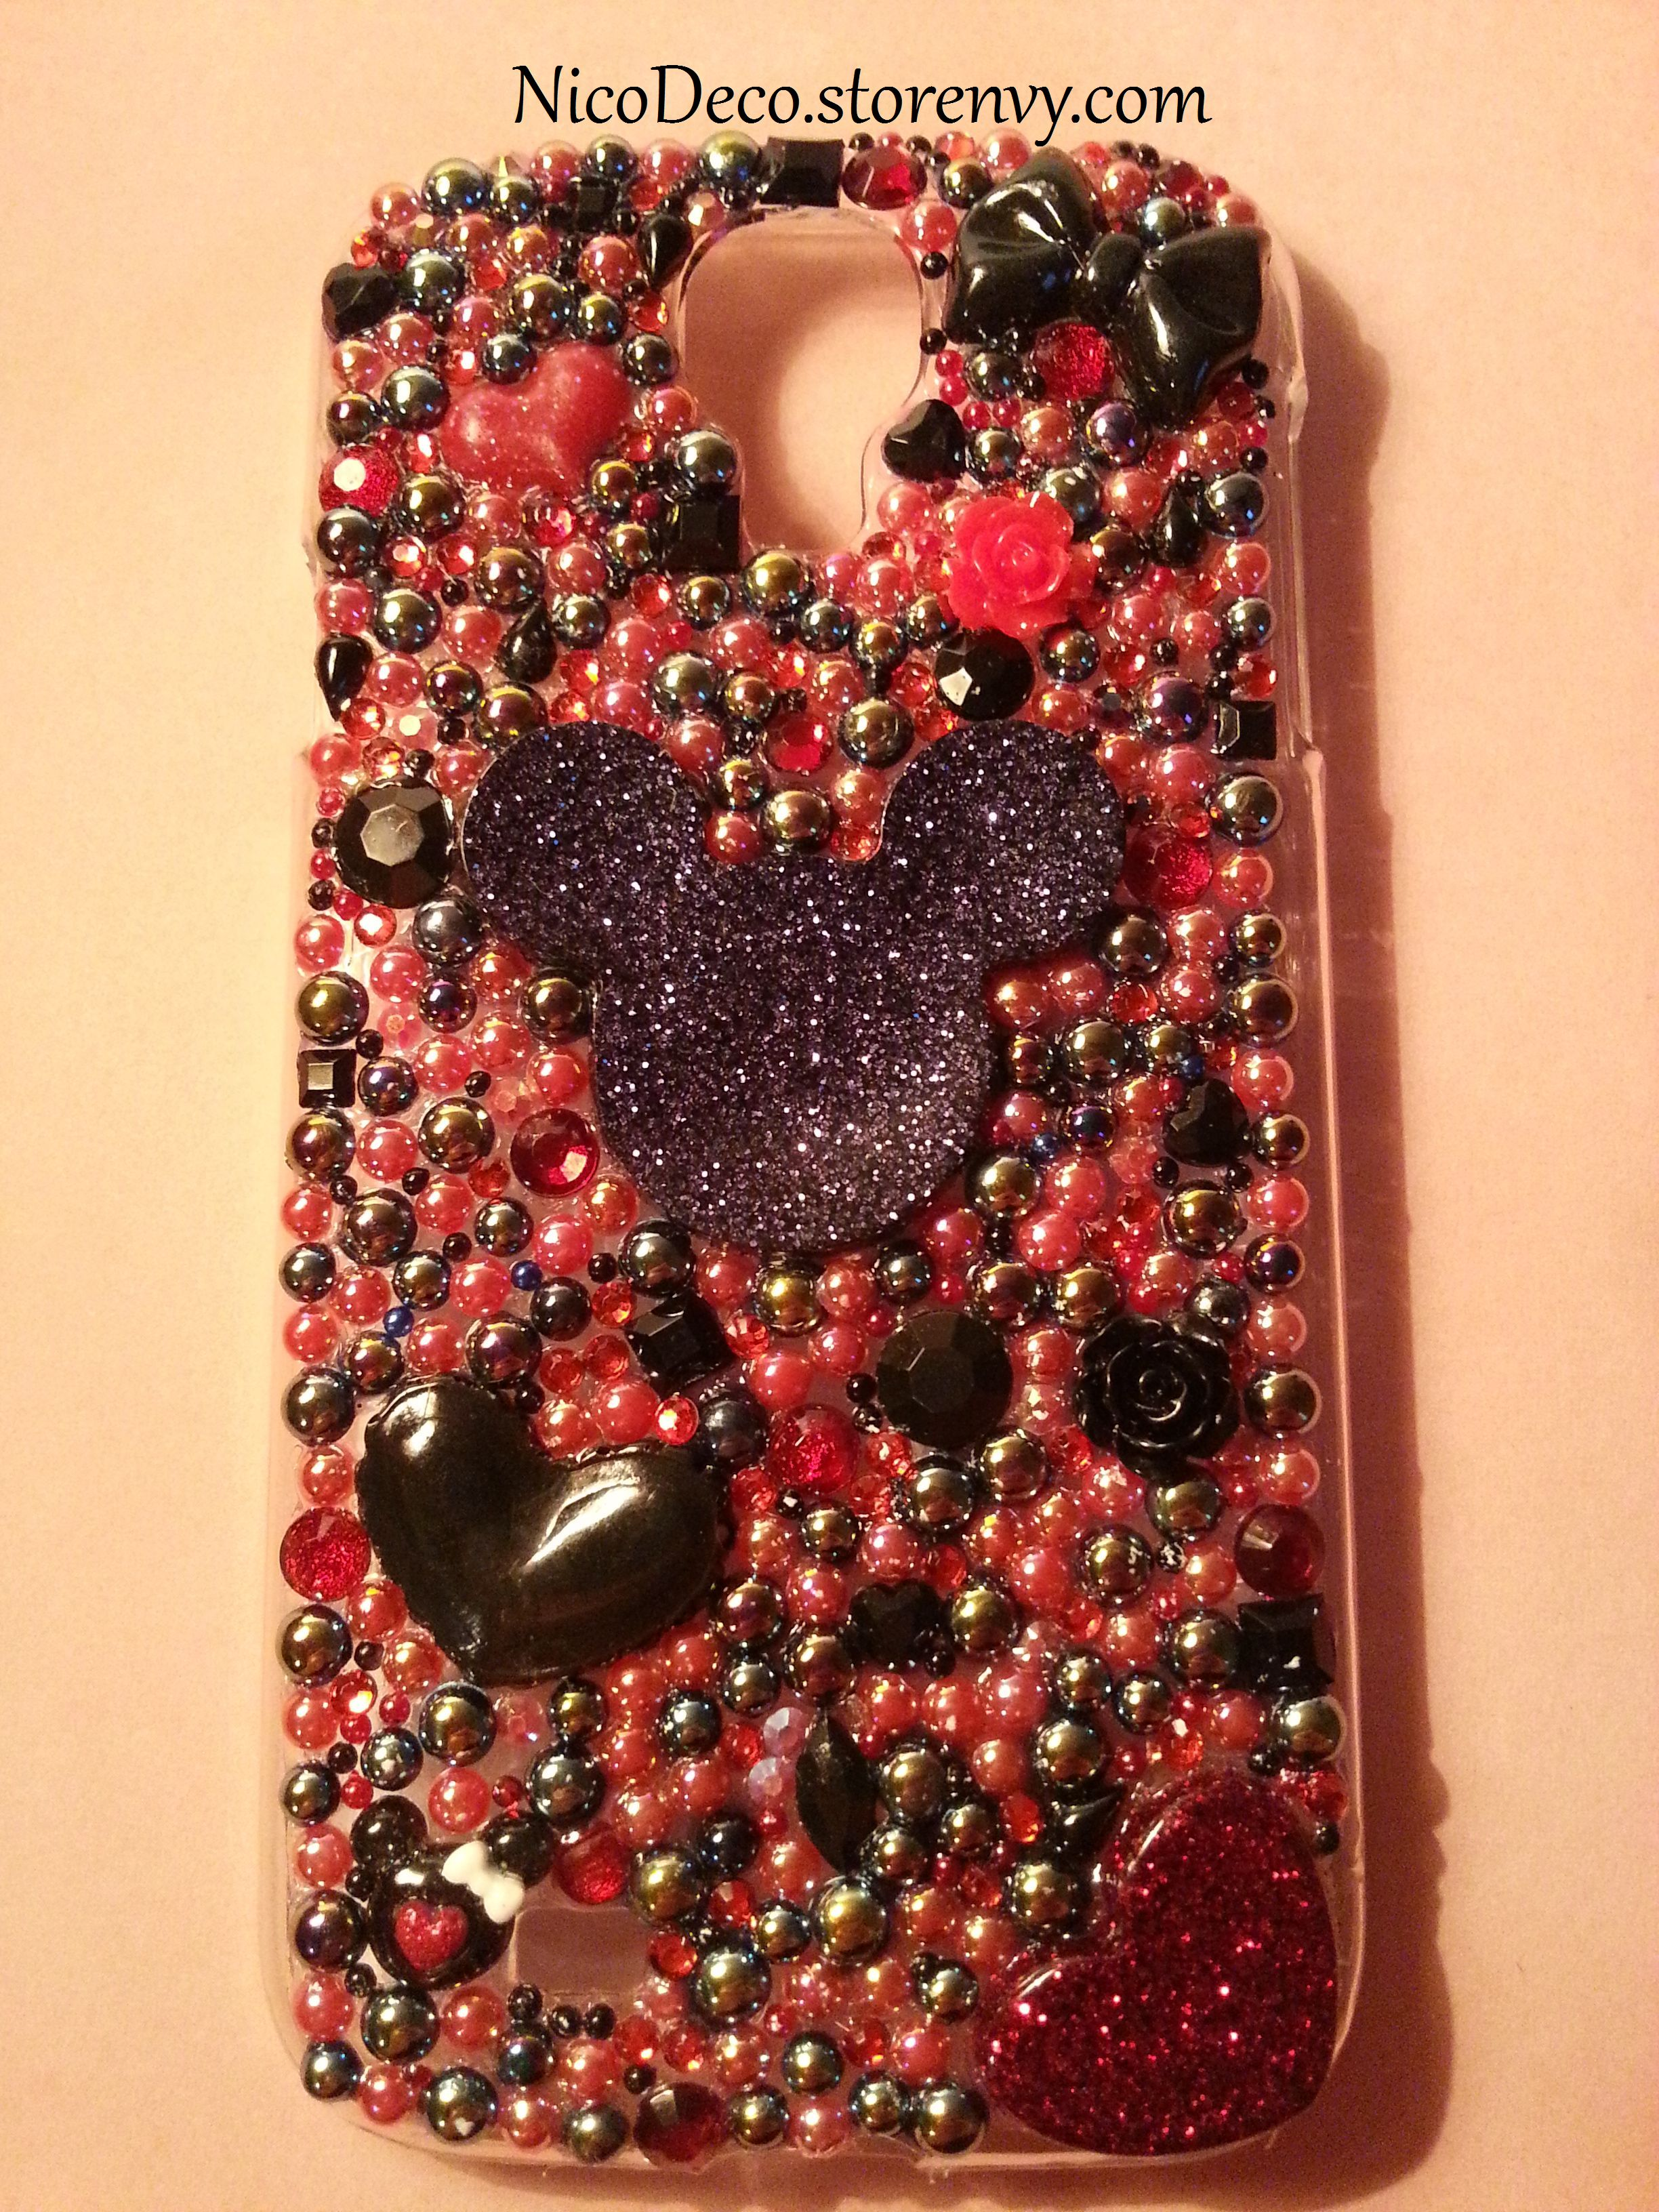 sports shoes 76835 7a381 Handmade Mickey Mouse Disney samsung Galaxy s4 bling decoden phone case  from Nico Deco